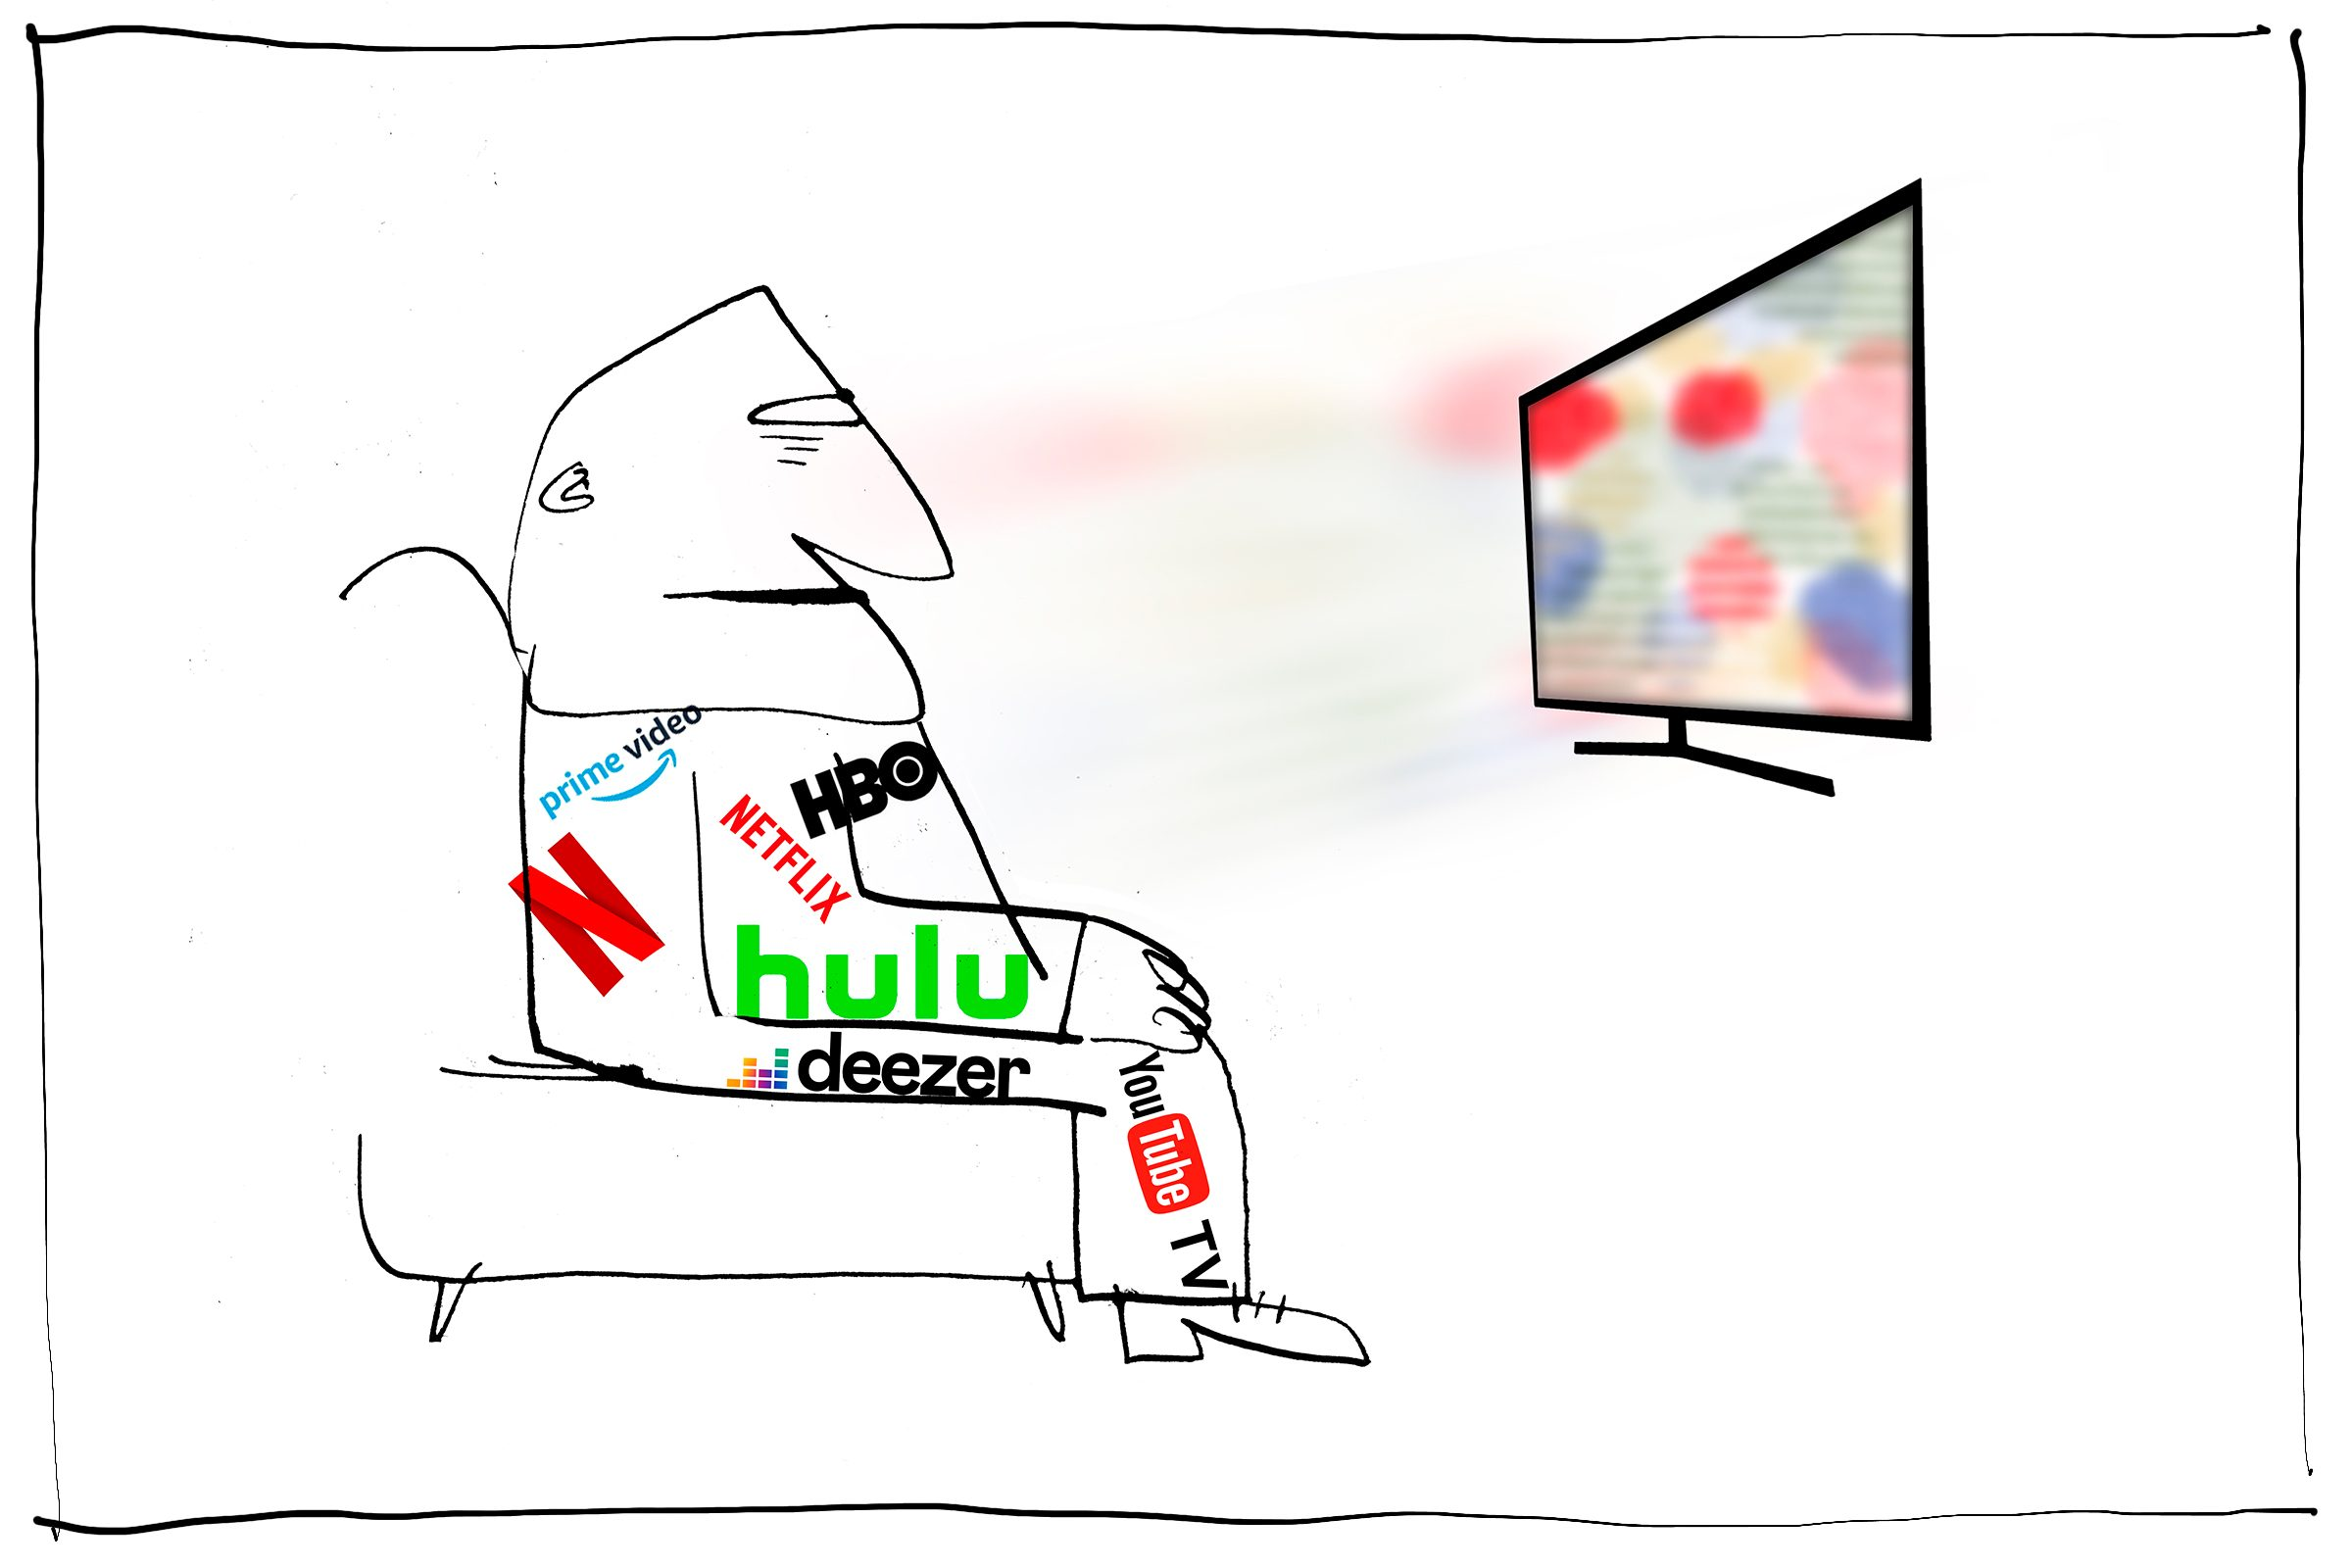 illustration of a figure wathing streaming services with logos on his clothes